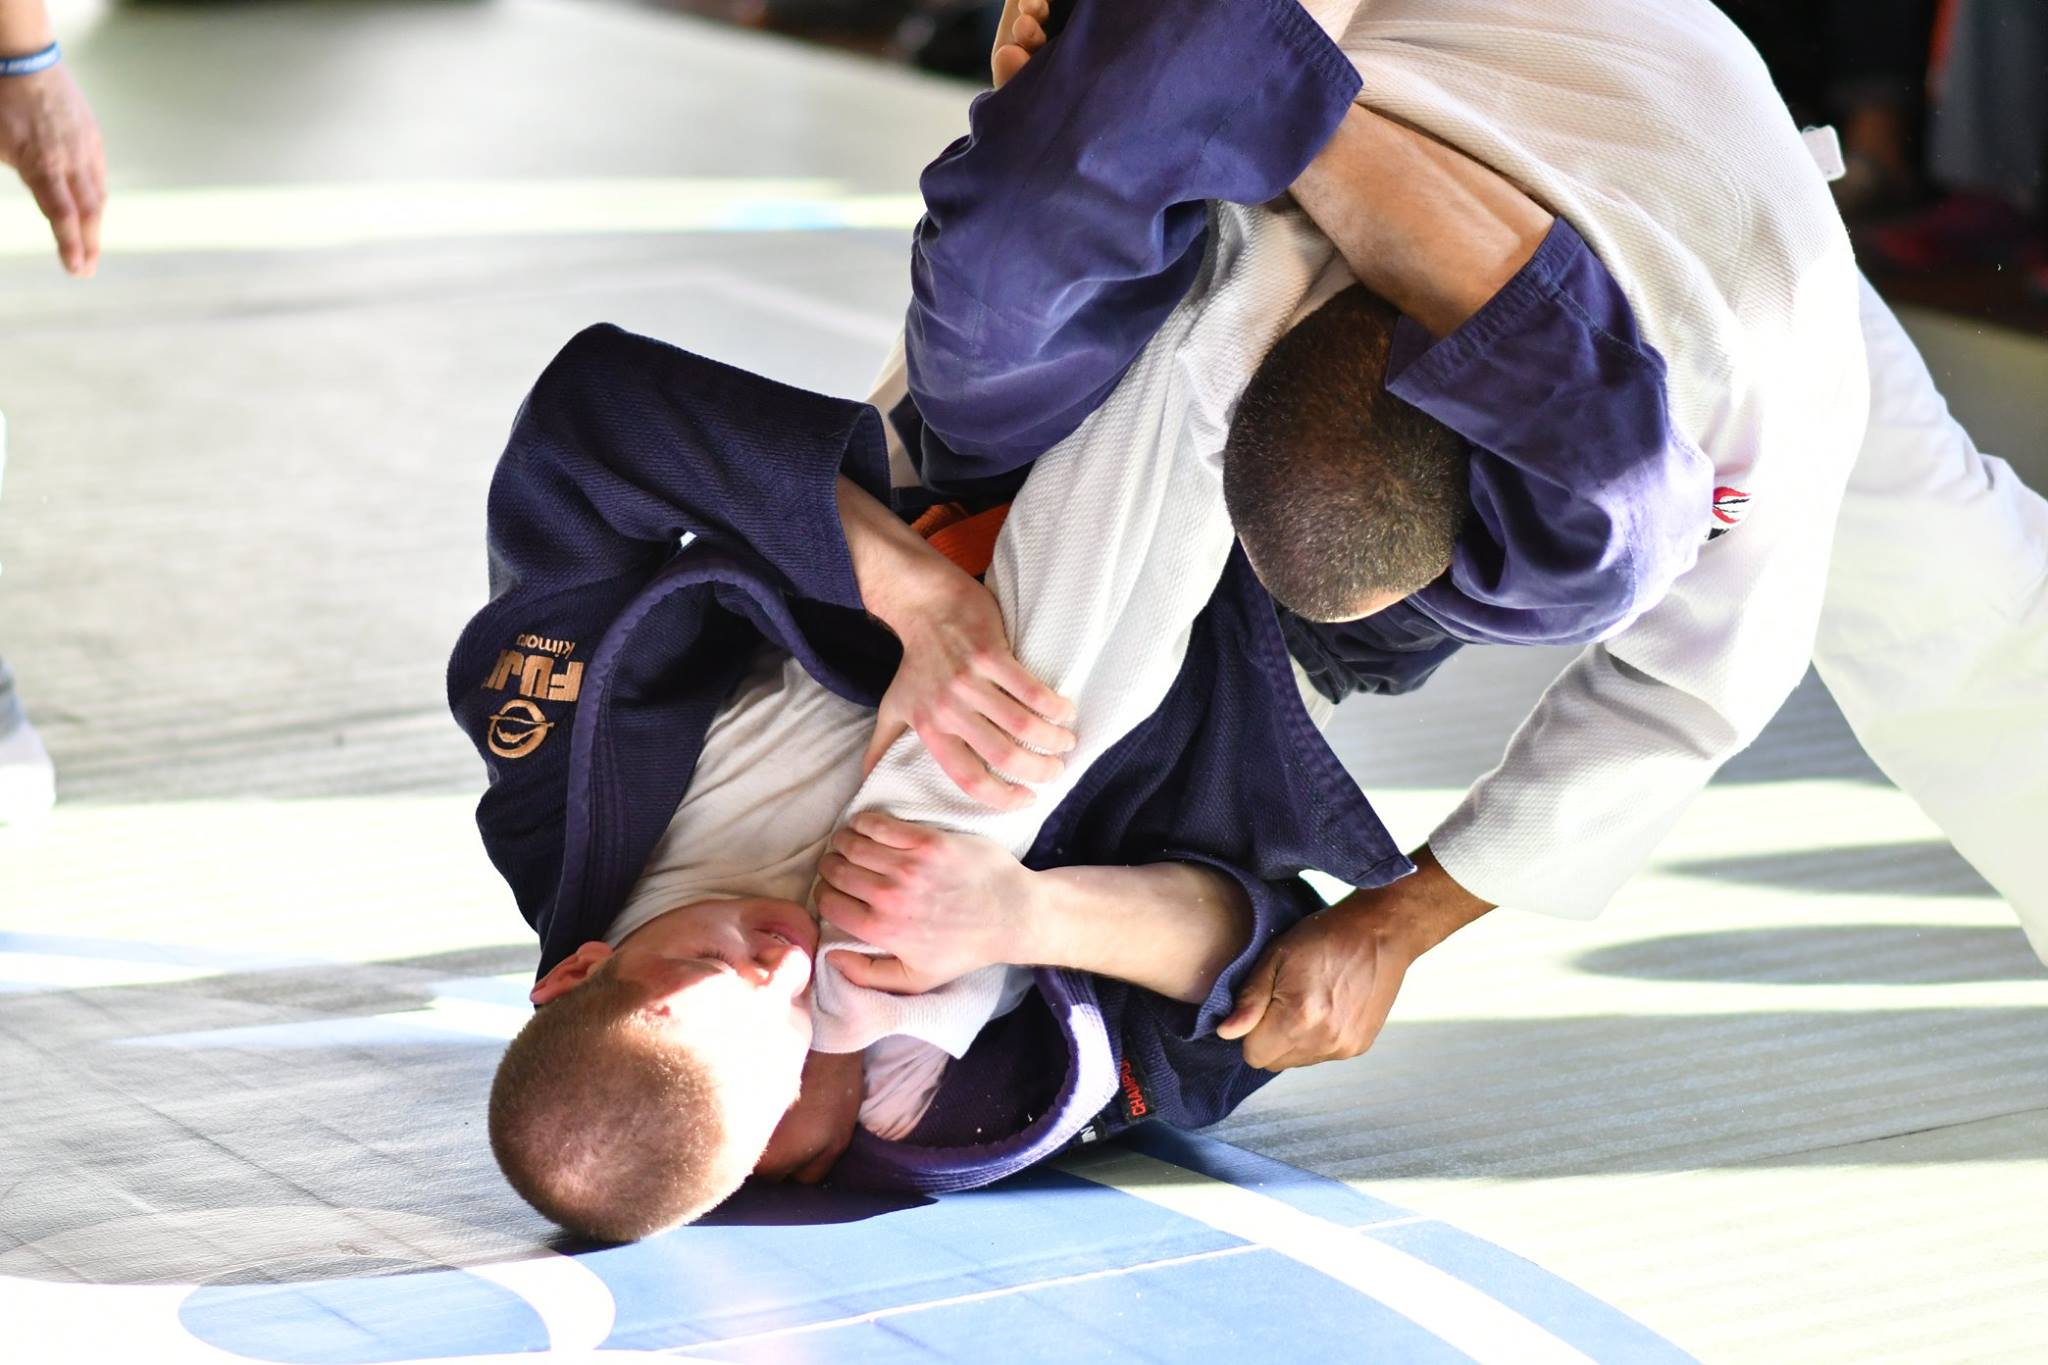 The Triangle Choke - A submission used in BJJ